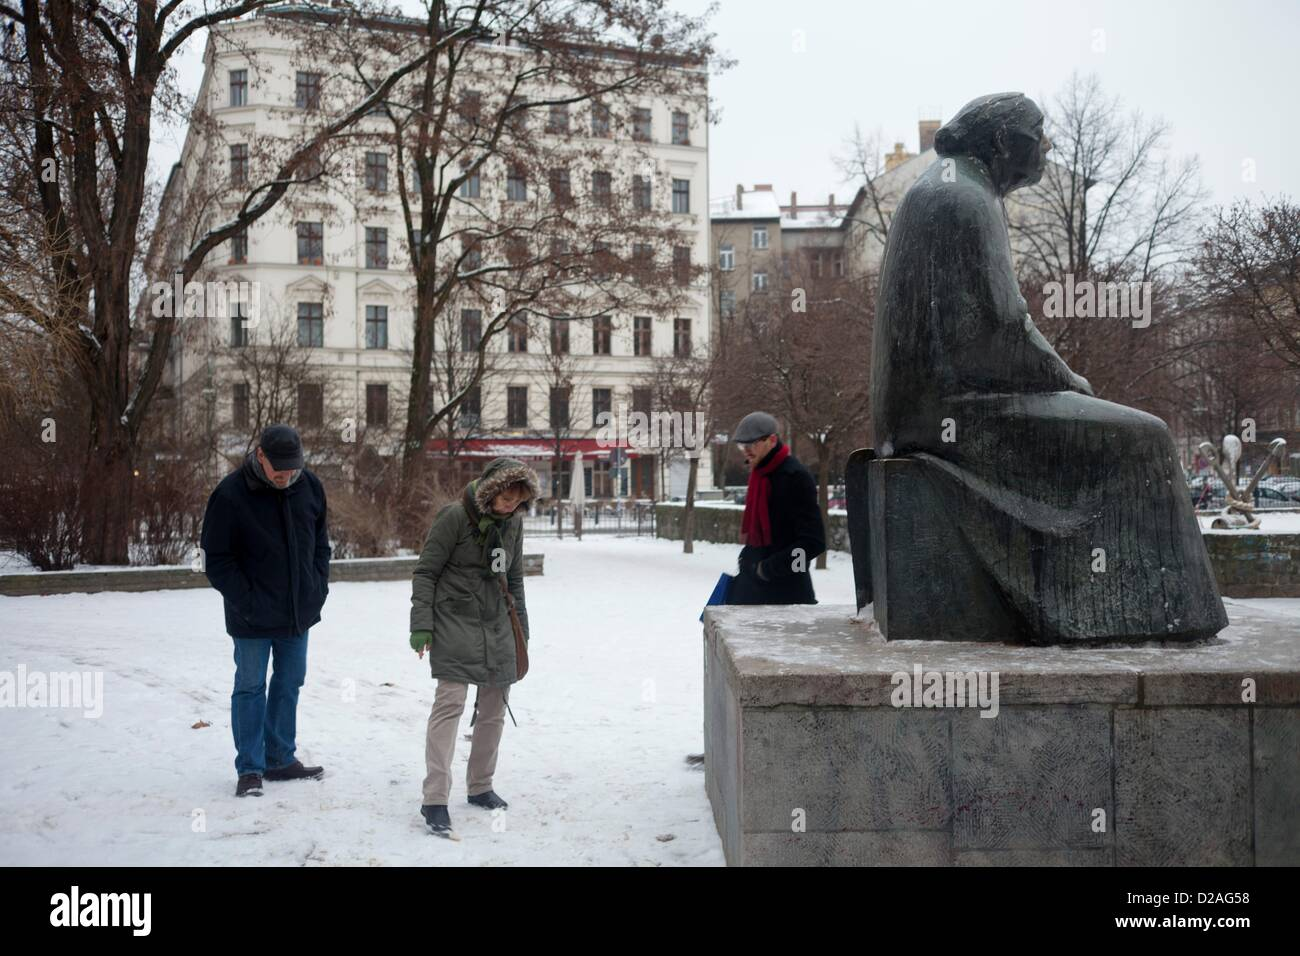 French tourists look for remaining spaetzle at the Kaethe Kollwitz monument in Berlin, Germany, 16 January 2013. - Stock Image